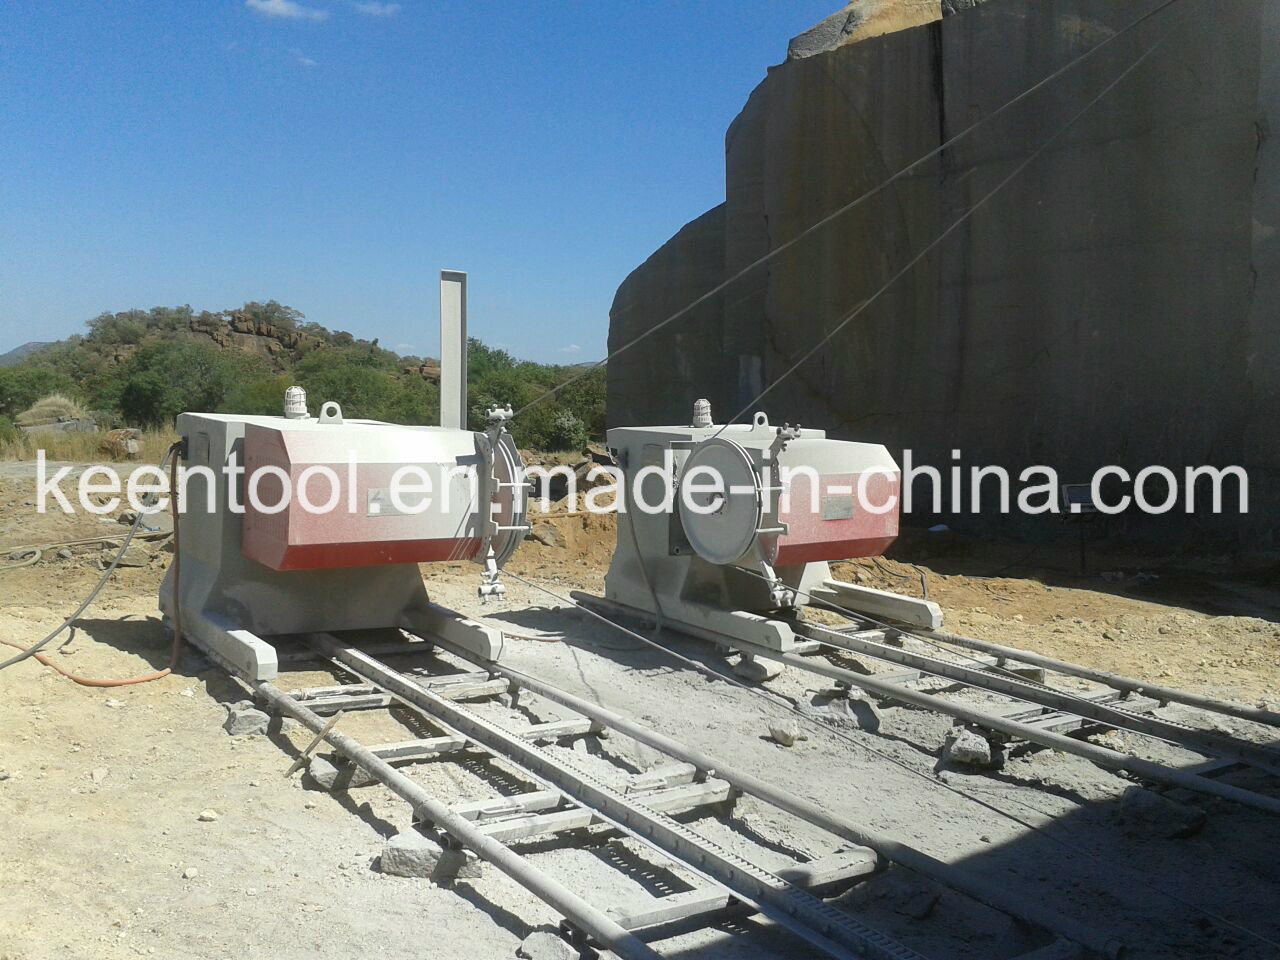 China 75kws/100HP Electrical Drive Wire Saw Machine for Mining or ...